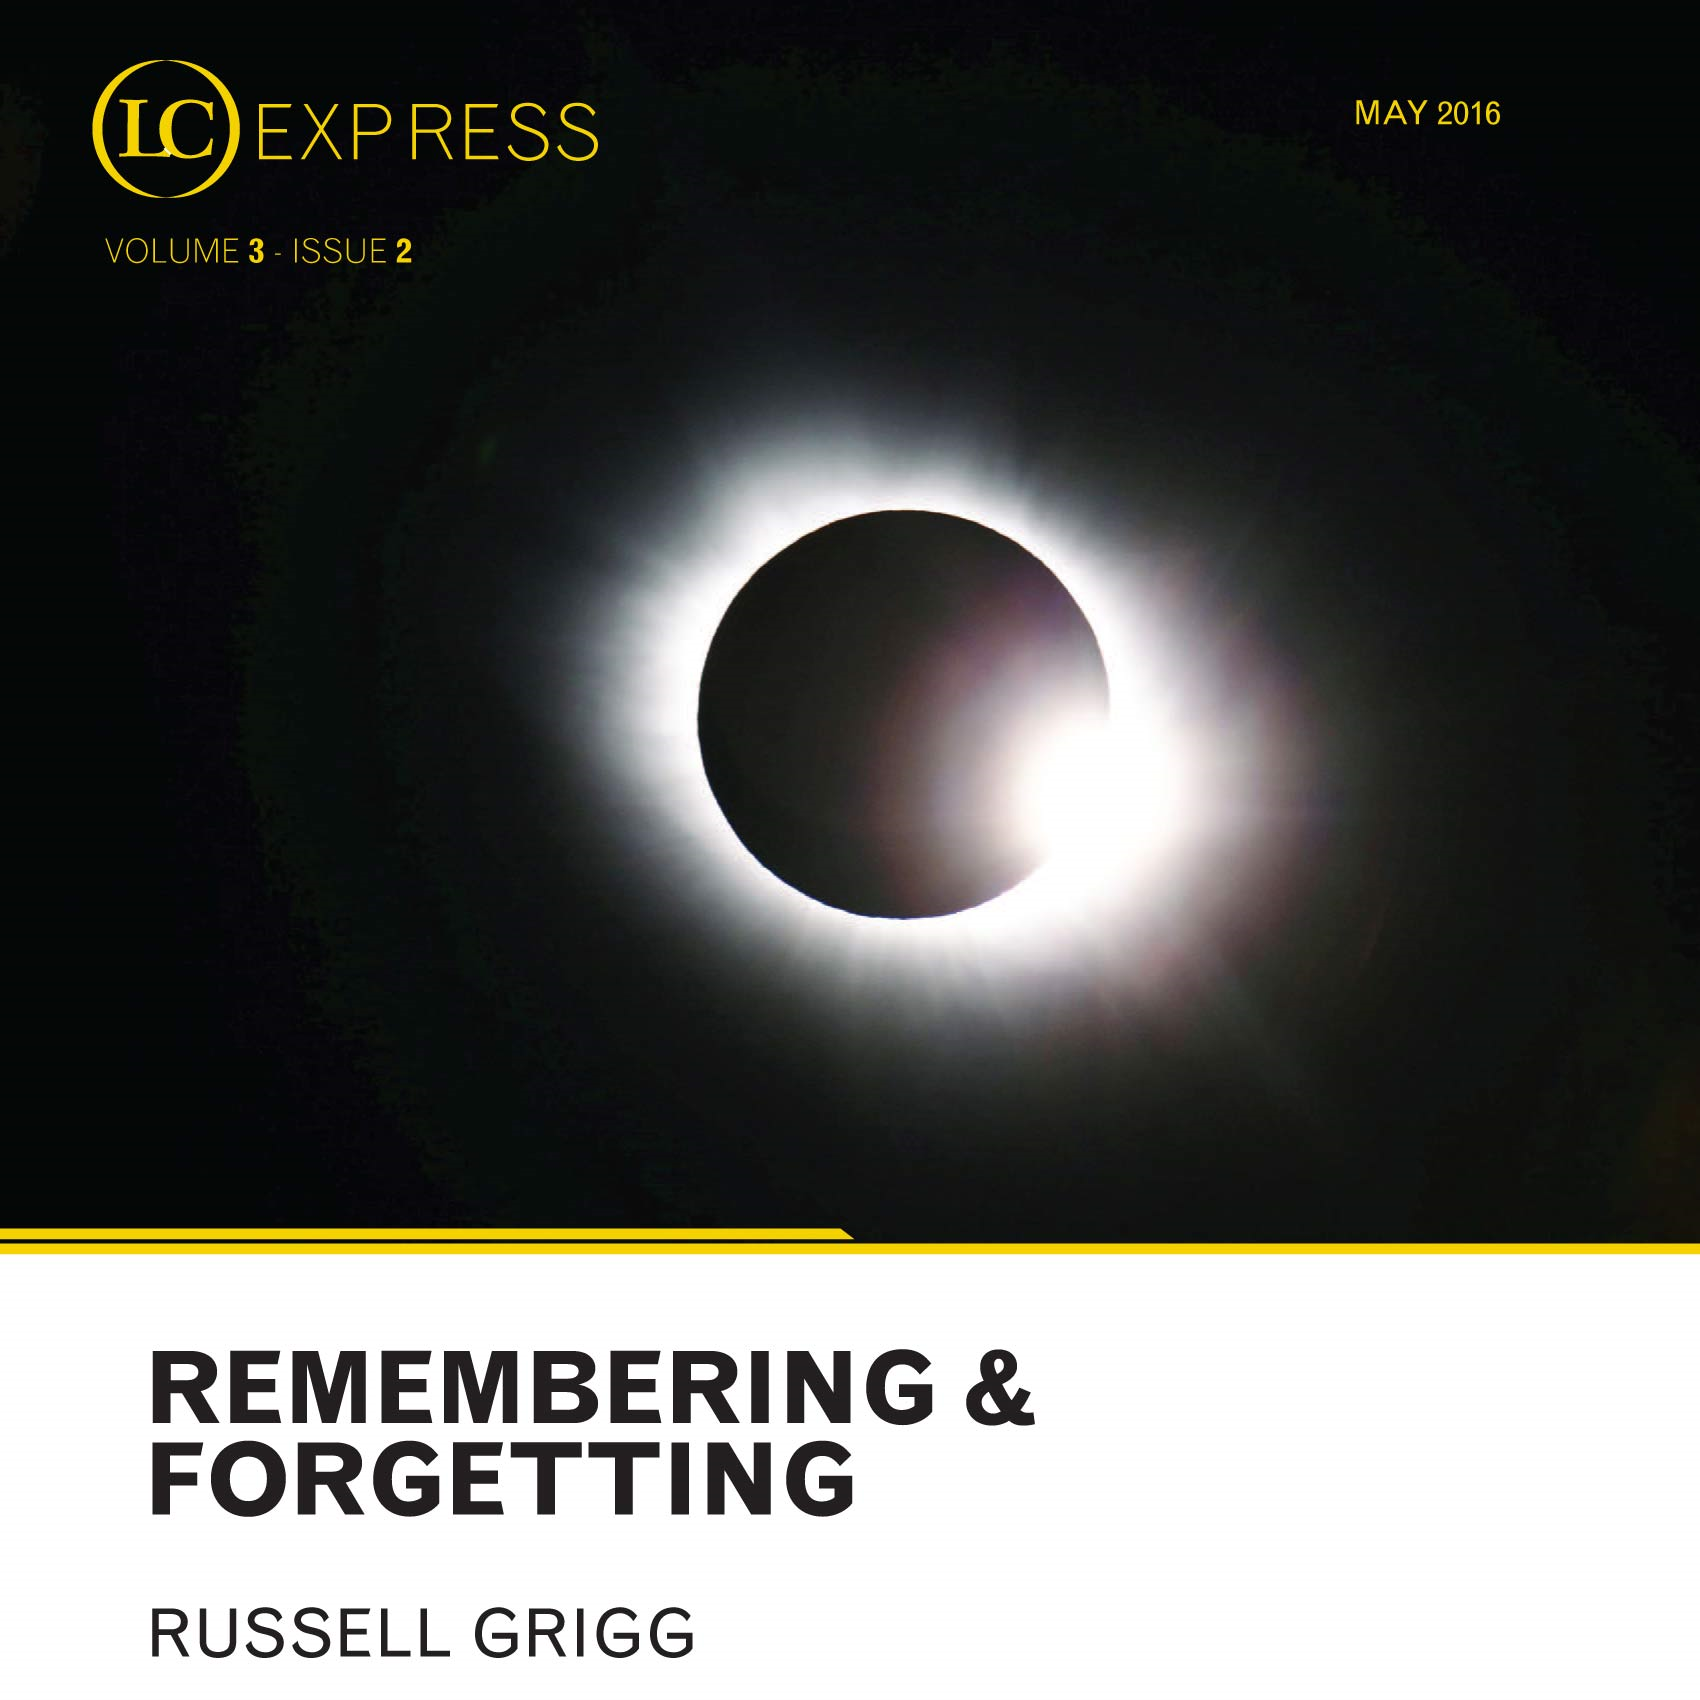 LCExpress Volume 3 / Issue 2  'Remembering & Forgetting'  Russell Grigg